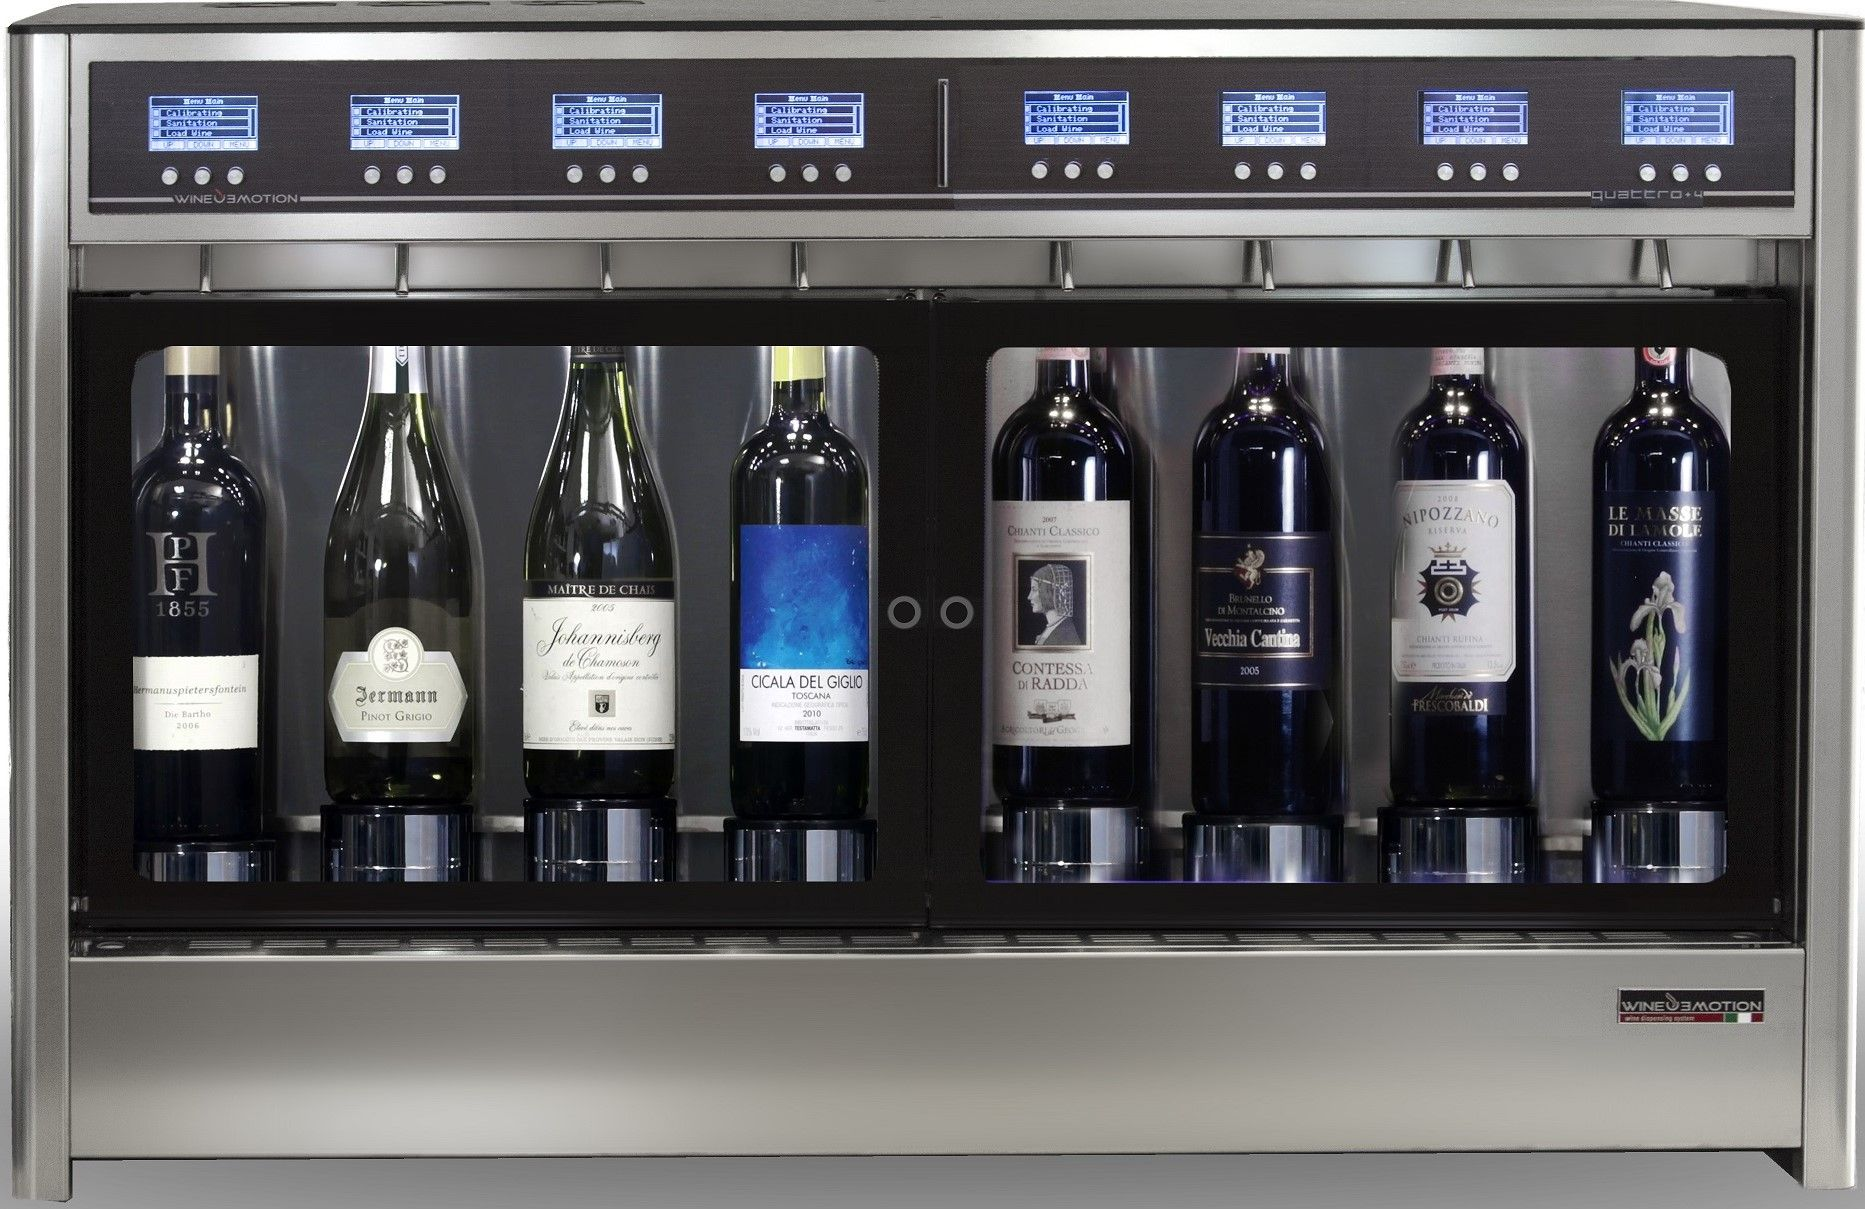 8 Bottle Dual Temperature Model For 4 White Wines And 4 Red Wines Simultaneously Perfectly Preserved And Dispensed At Correct Te Wine Dispenser Wine Dispenser